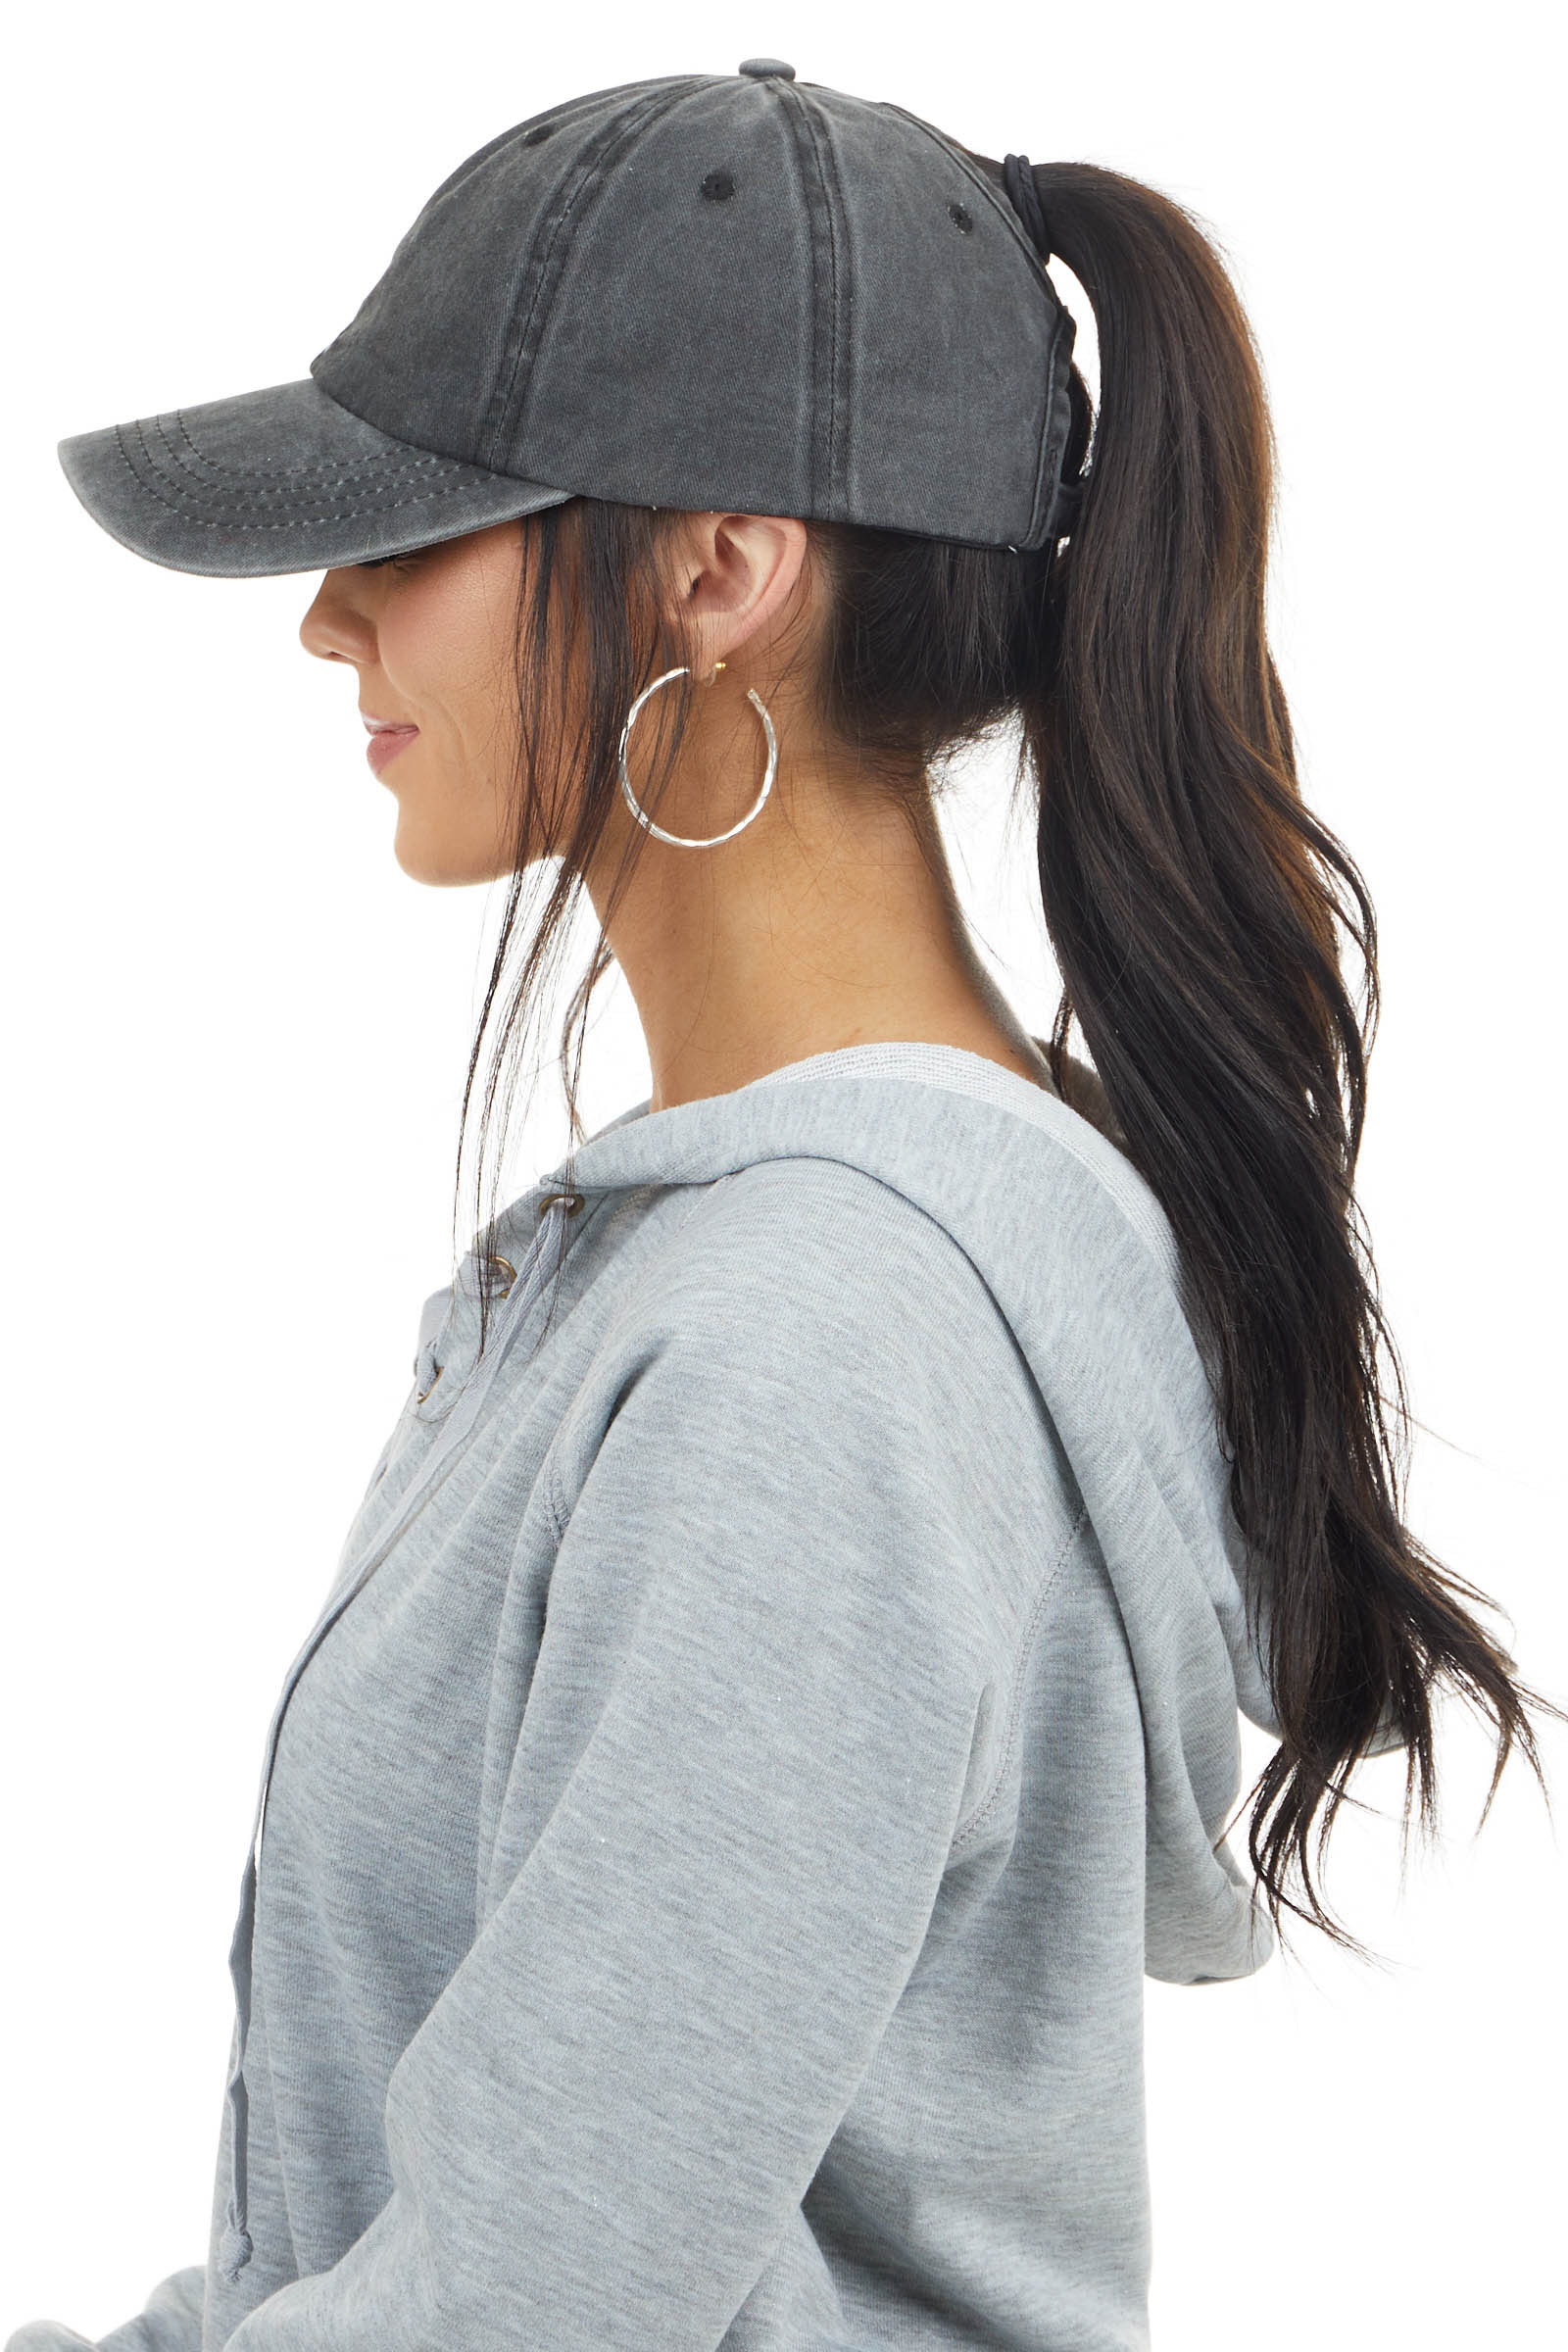 Charcoal Grey Mineral Wash Baseball Cap with Ponytail Hole